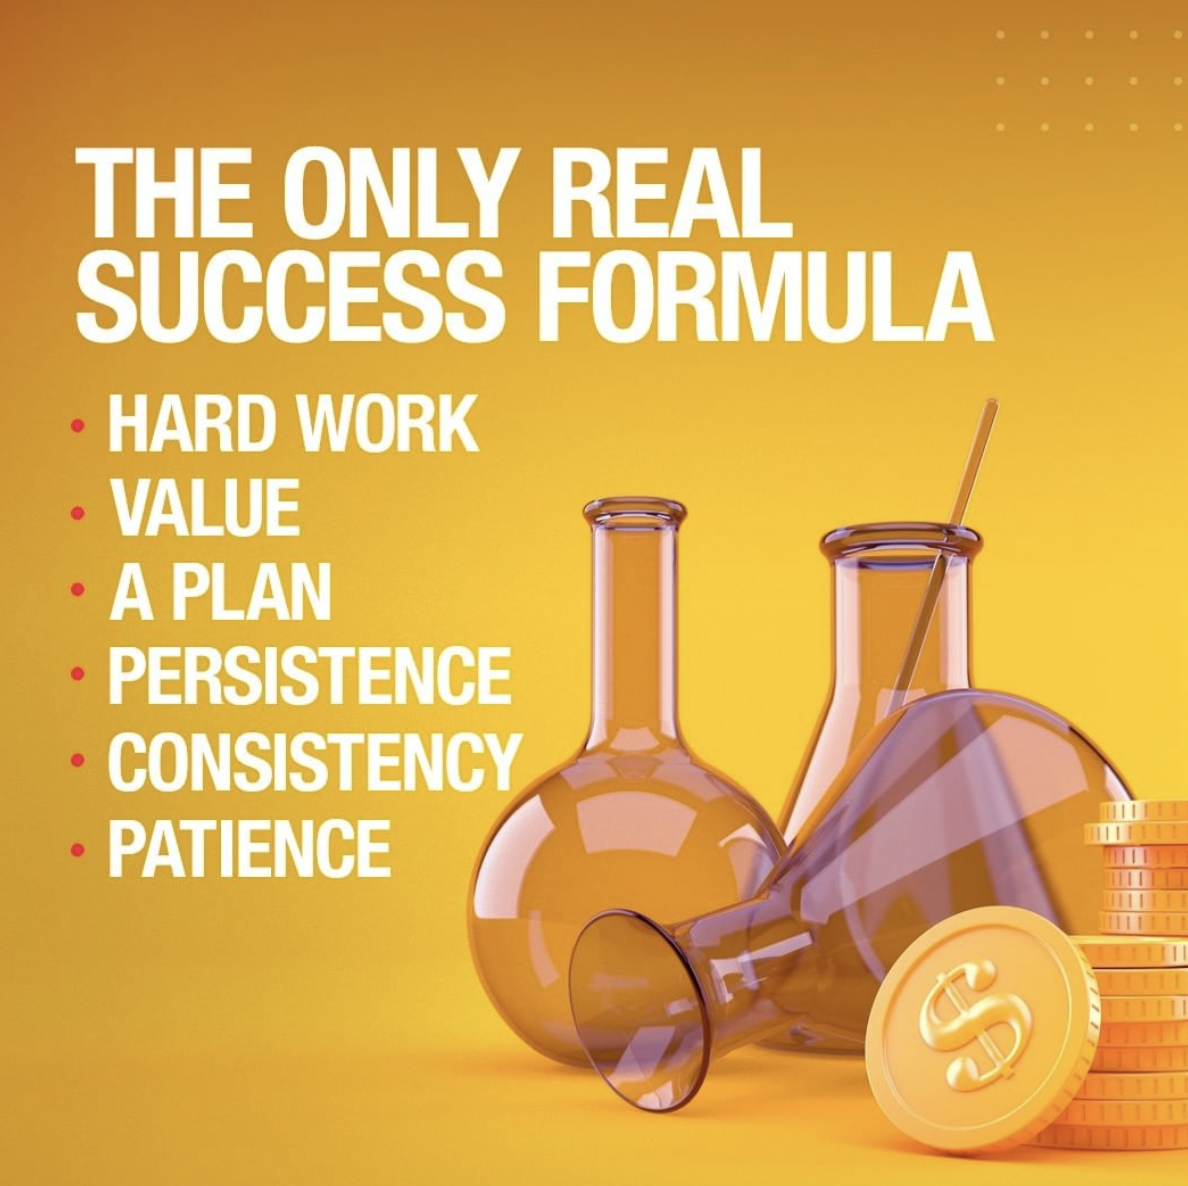 [Image] The only real success formula is based on 6 essential points